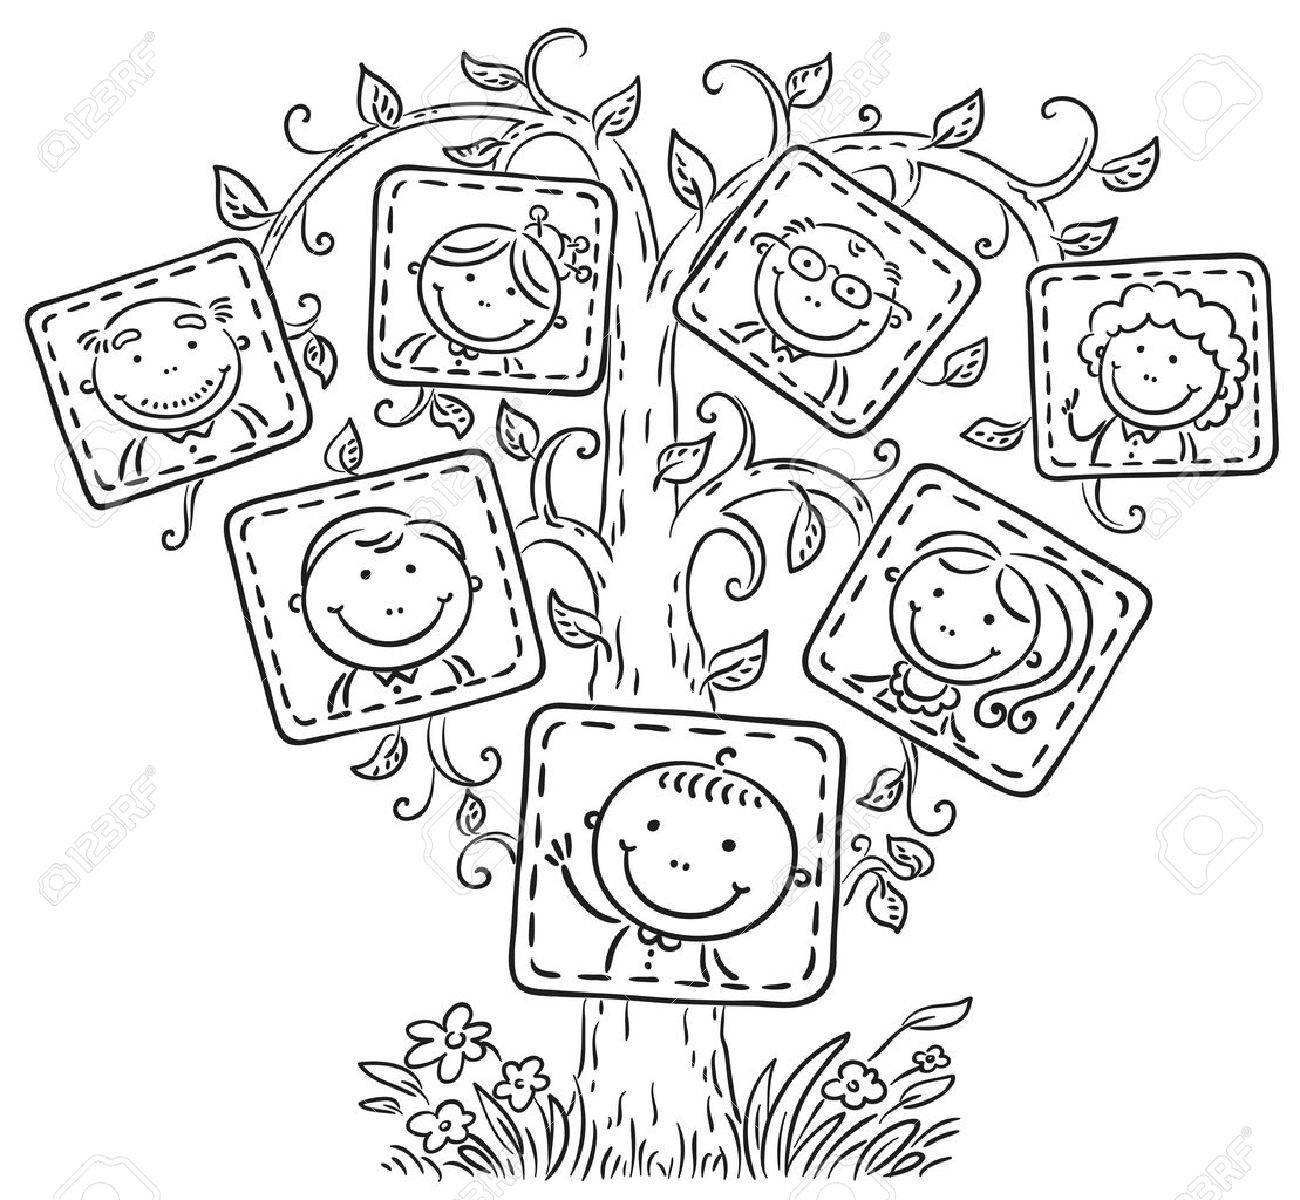 Happy Family Tree In Pictures Black And White Outline Royalty Free